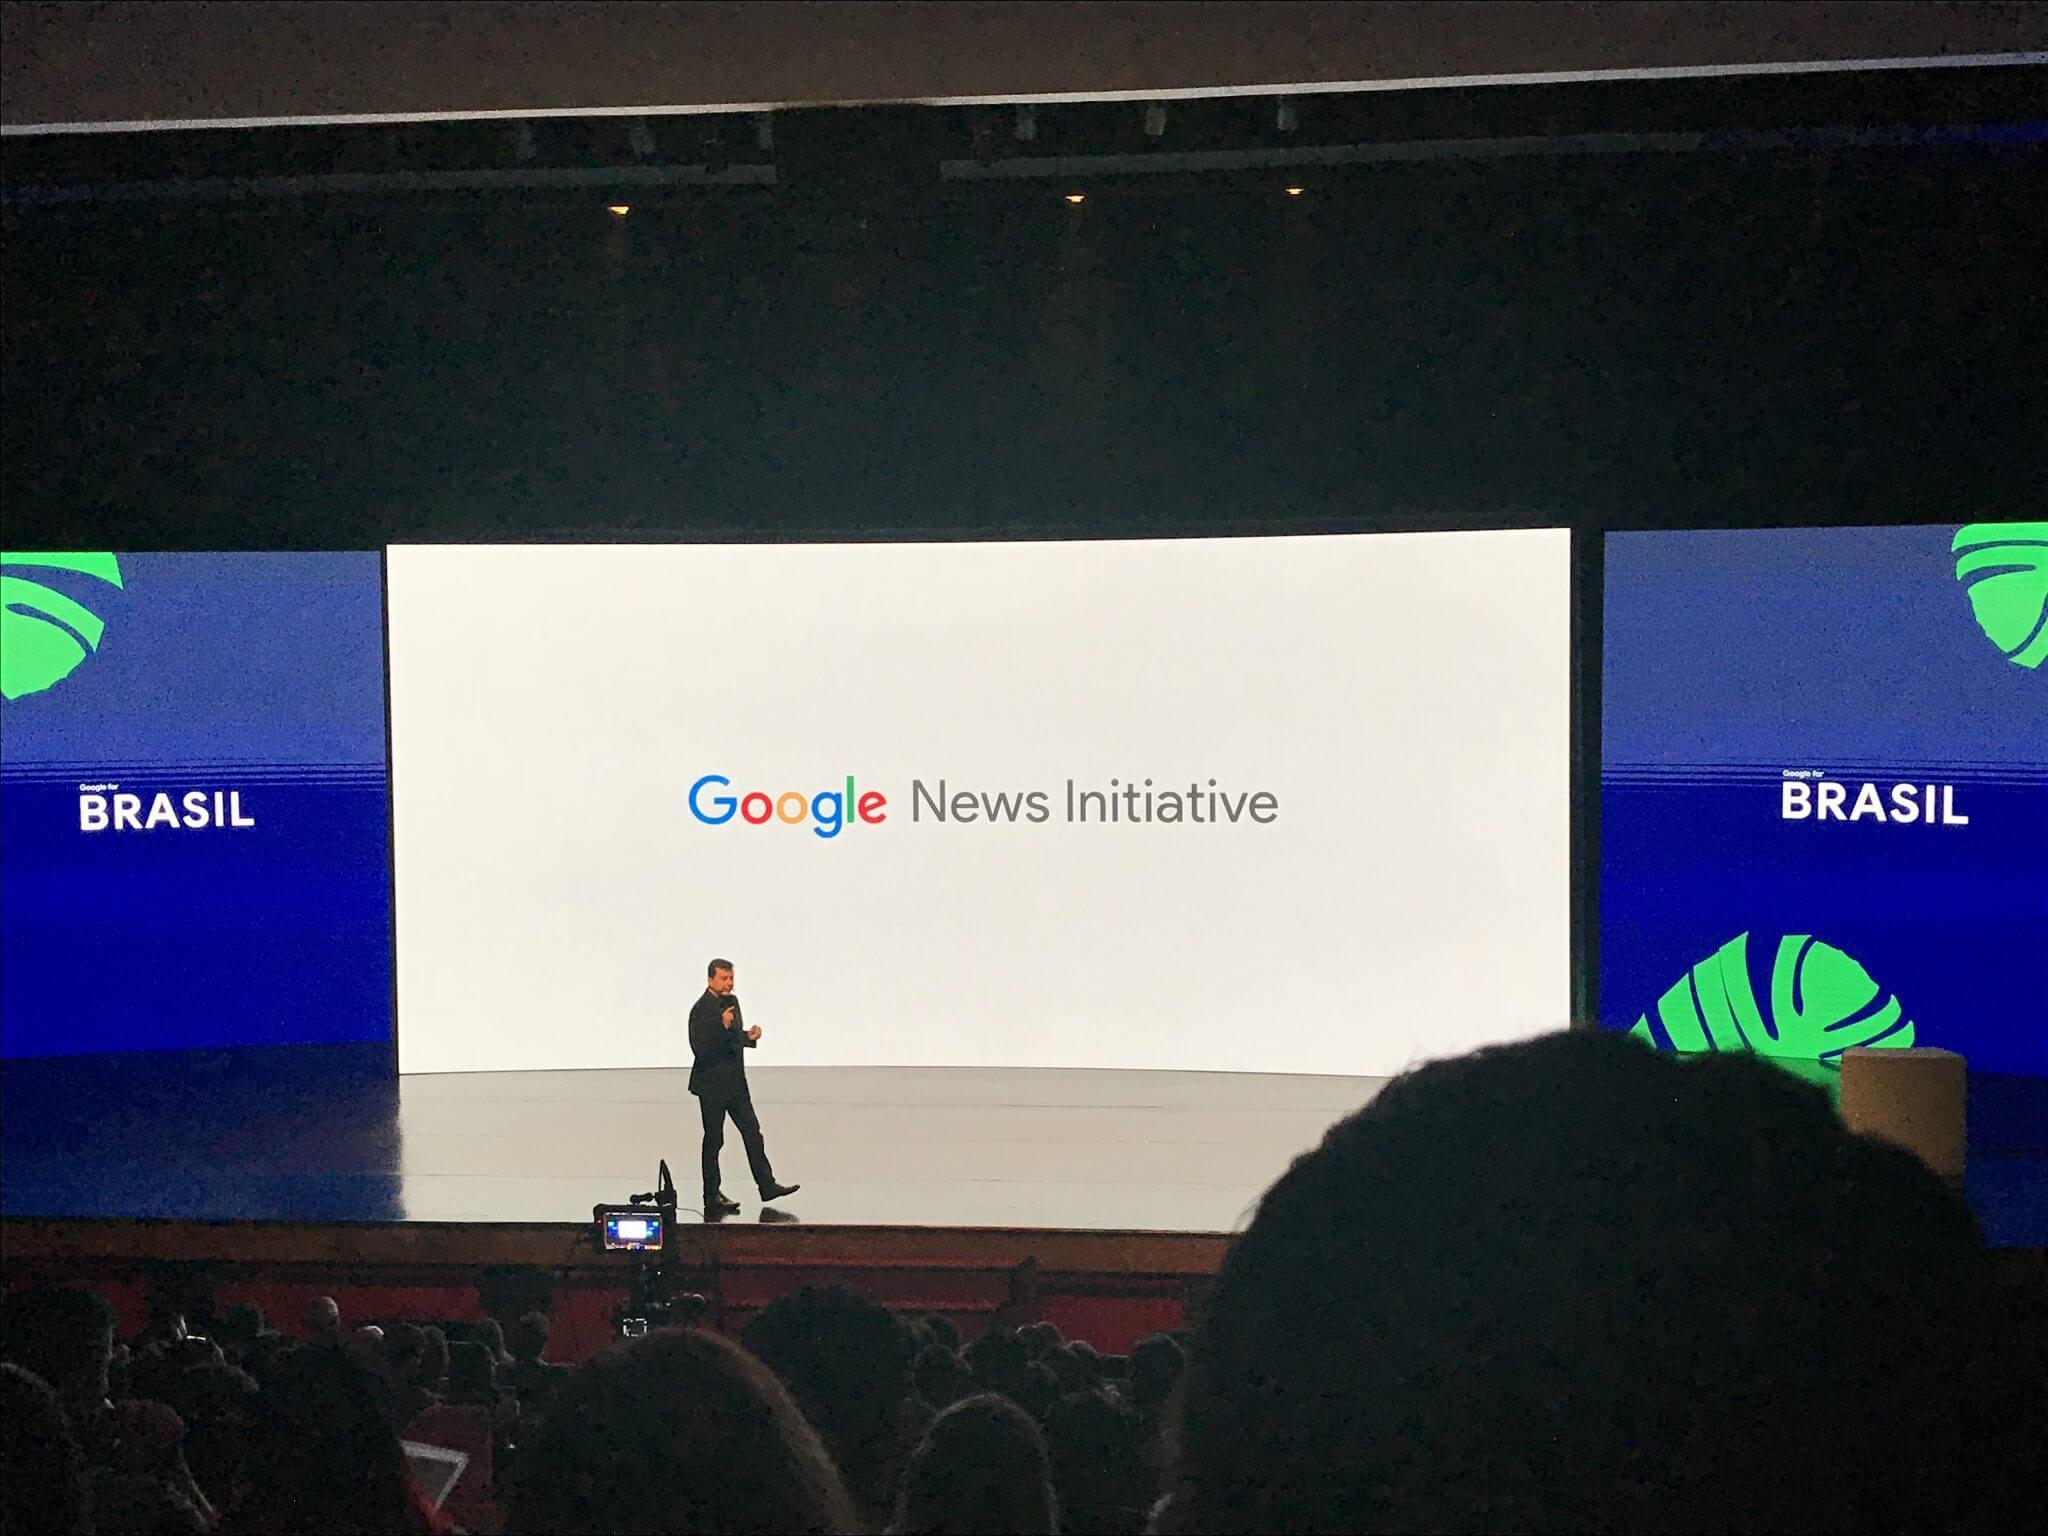 Google News - Google For Brasil